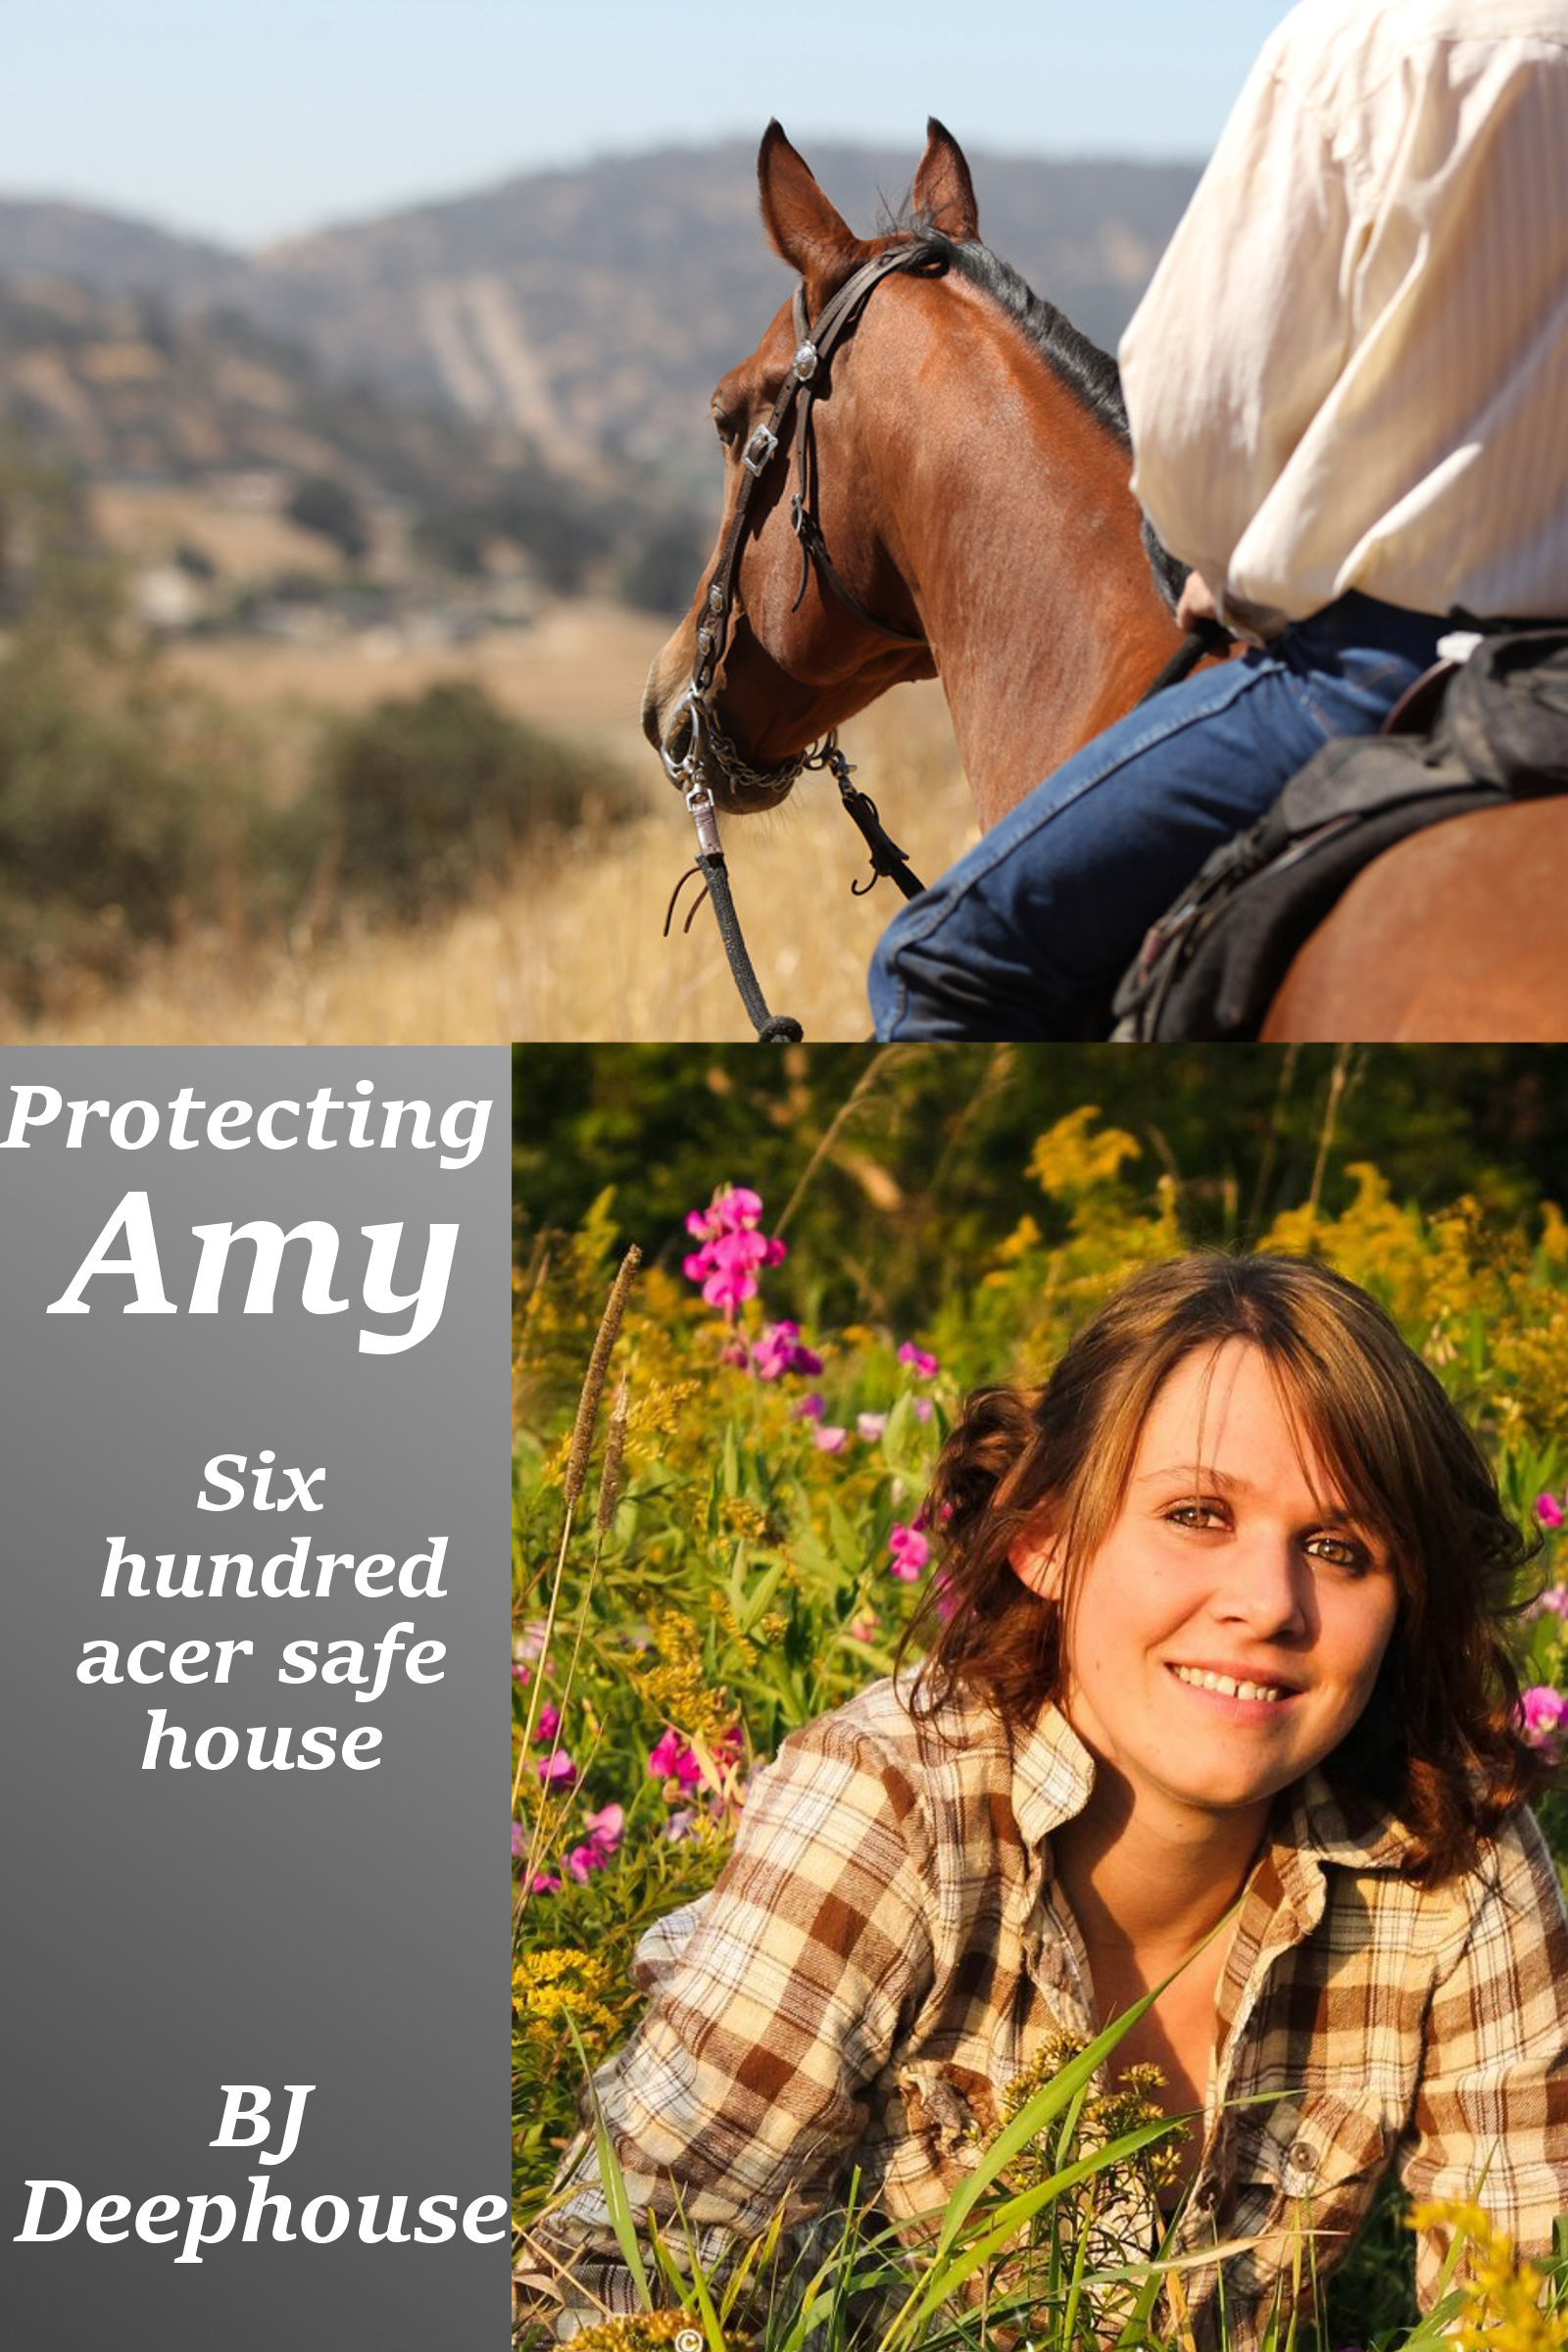 Protecting Amy BJ Deephouse